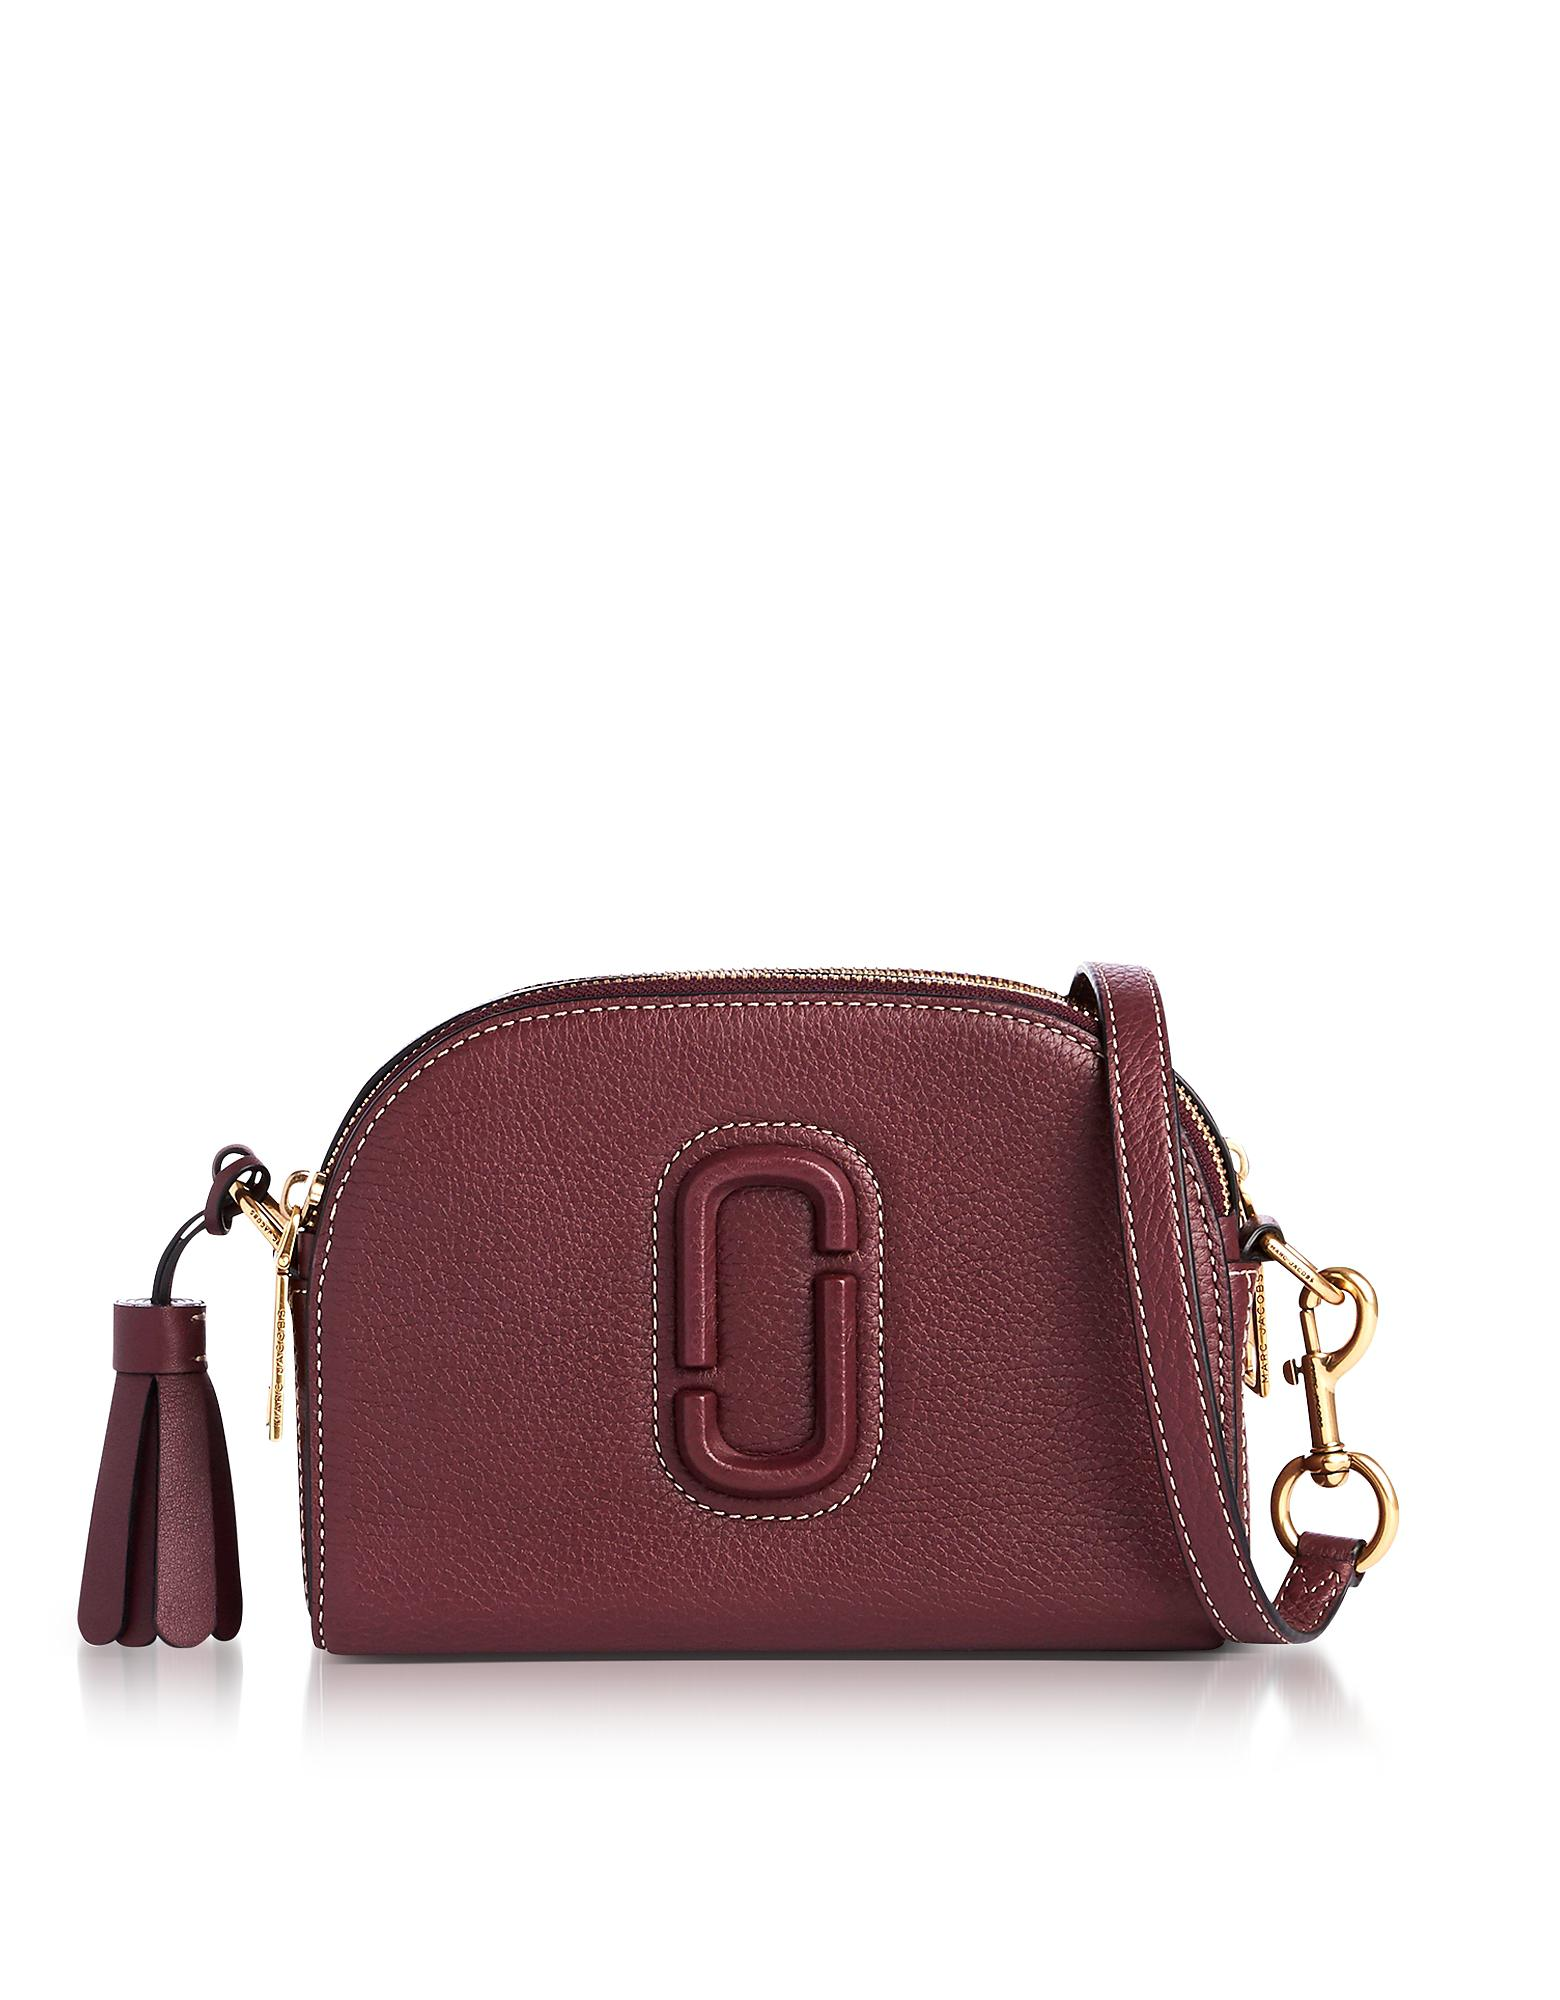 e651df46caf6 Lyst - Marc Jacobs Shutter Blackberry Leather Small Camera Bag in Purple